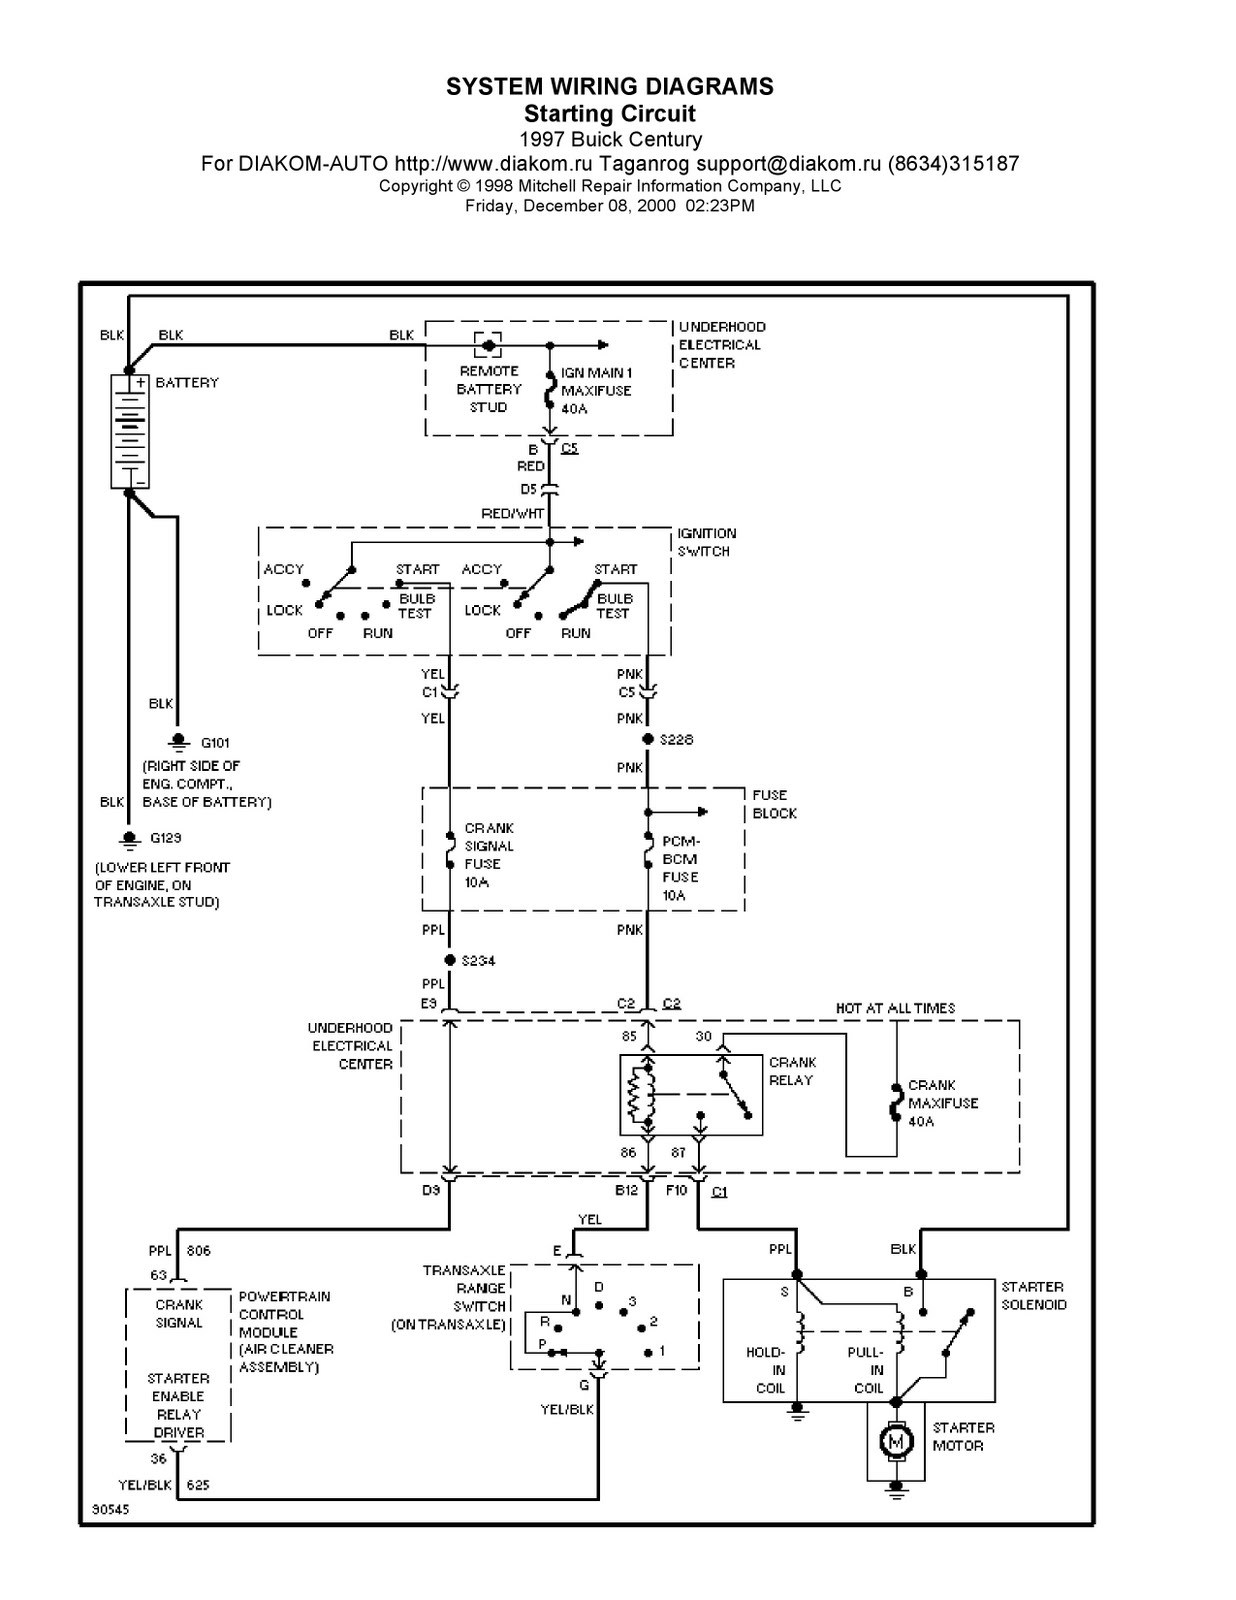 1997 Buick Century System Wiring Diagram Starting Circuit 99 Fuse Box